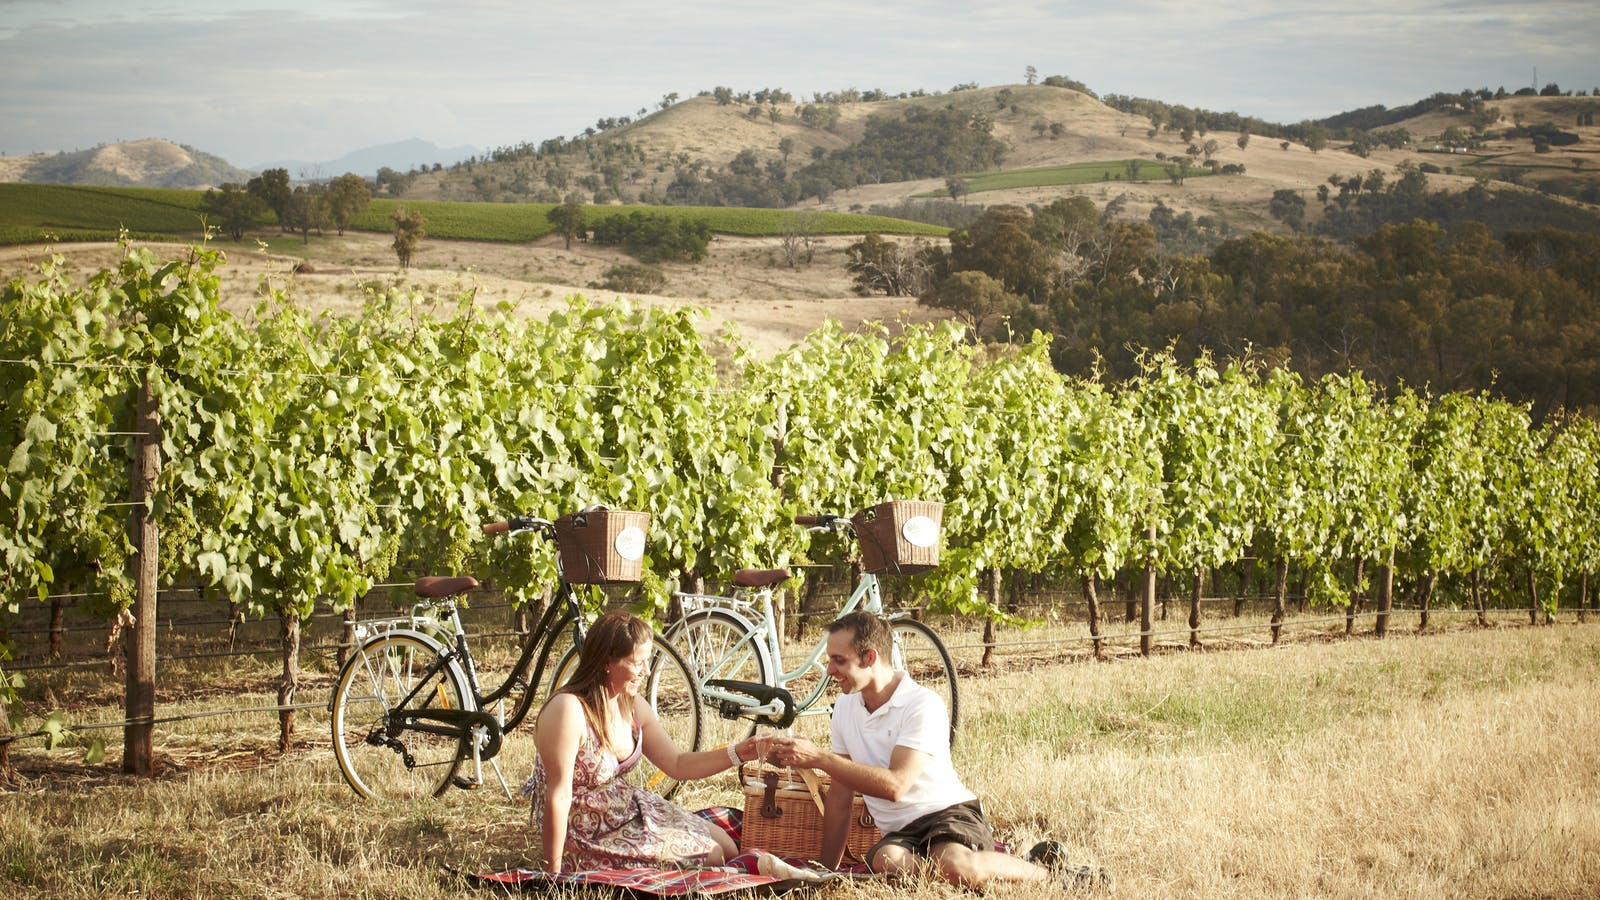 picnicking in vineyard -pedal to produce